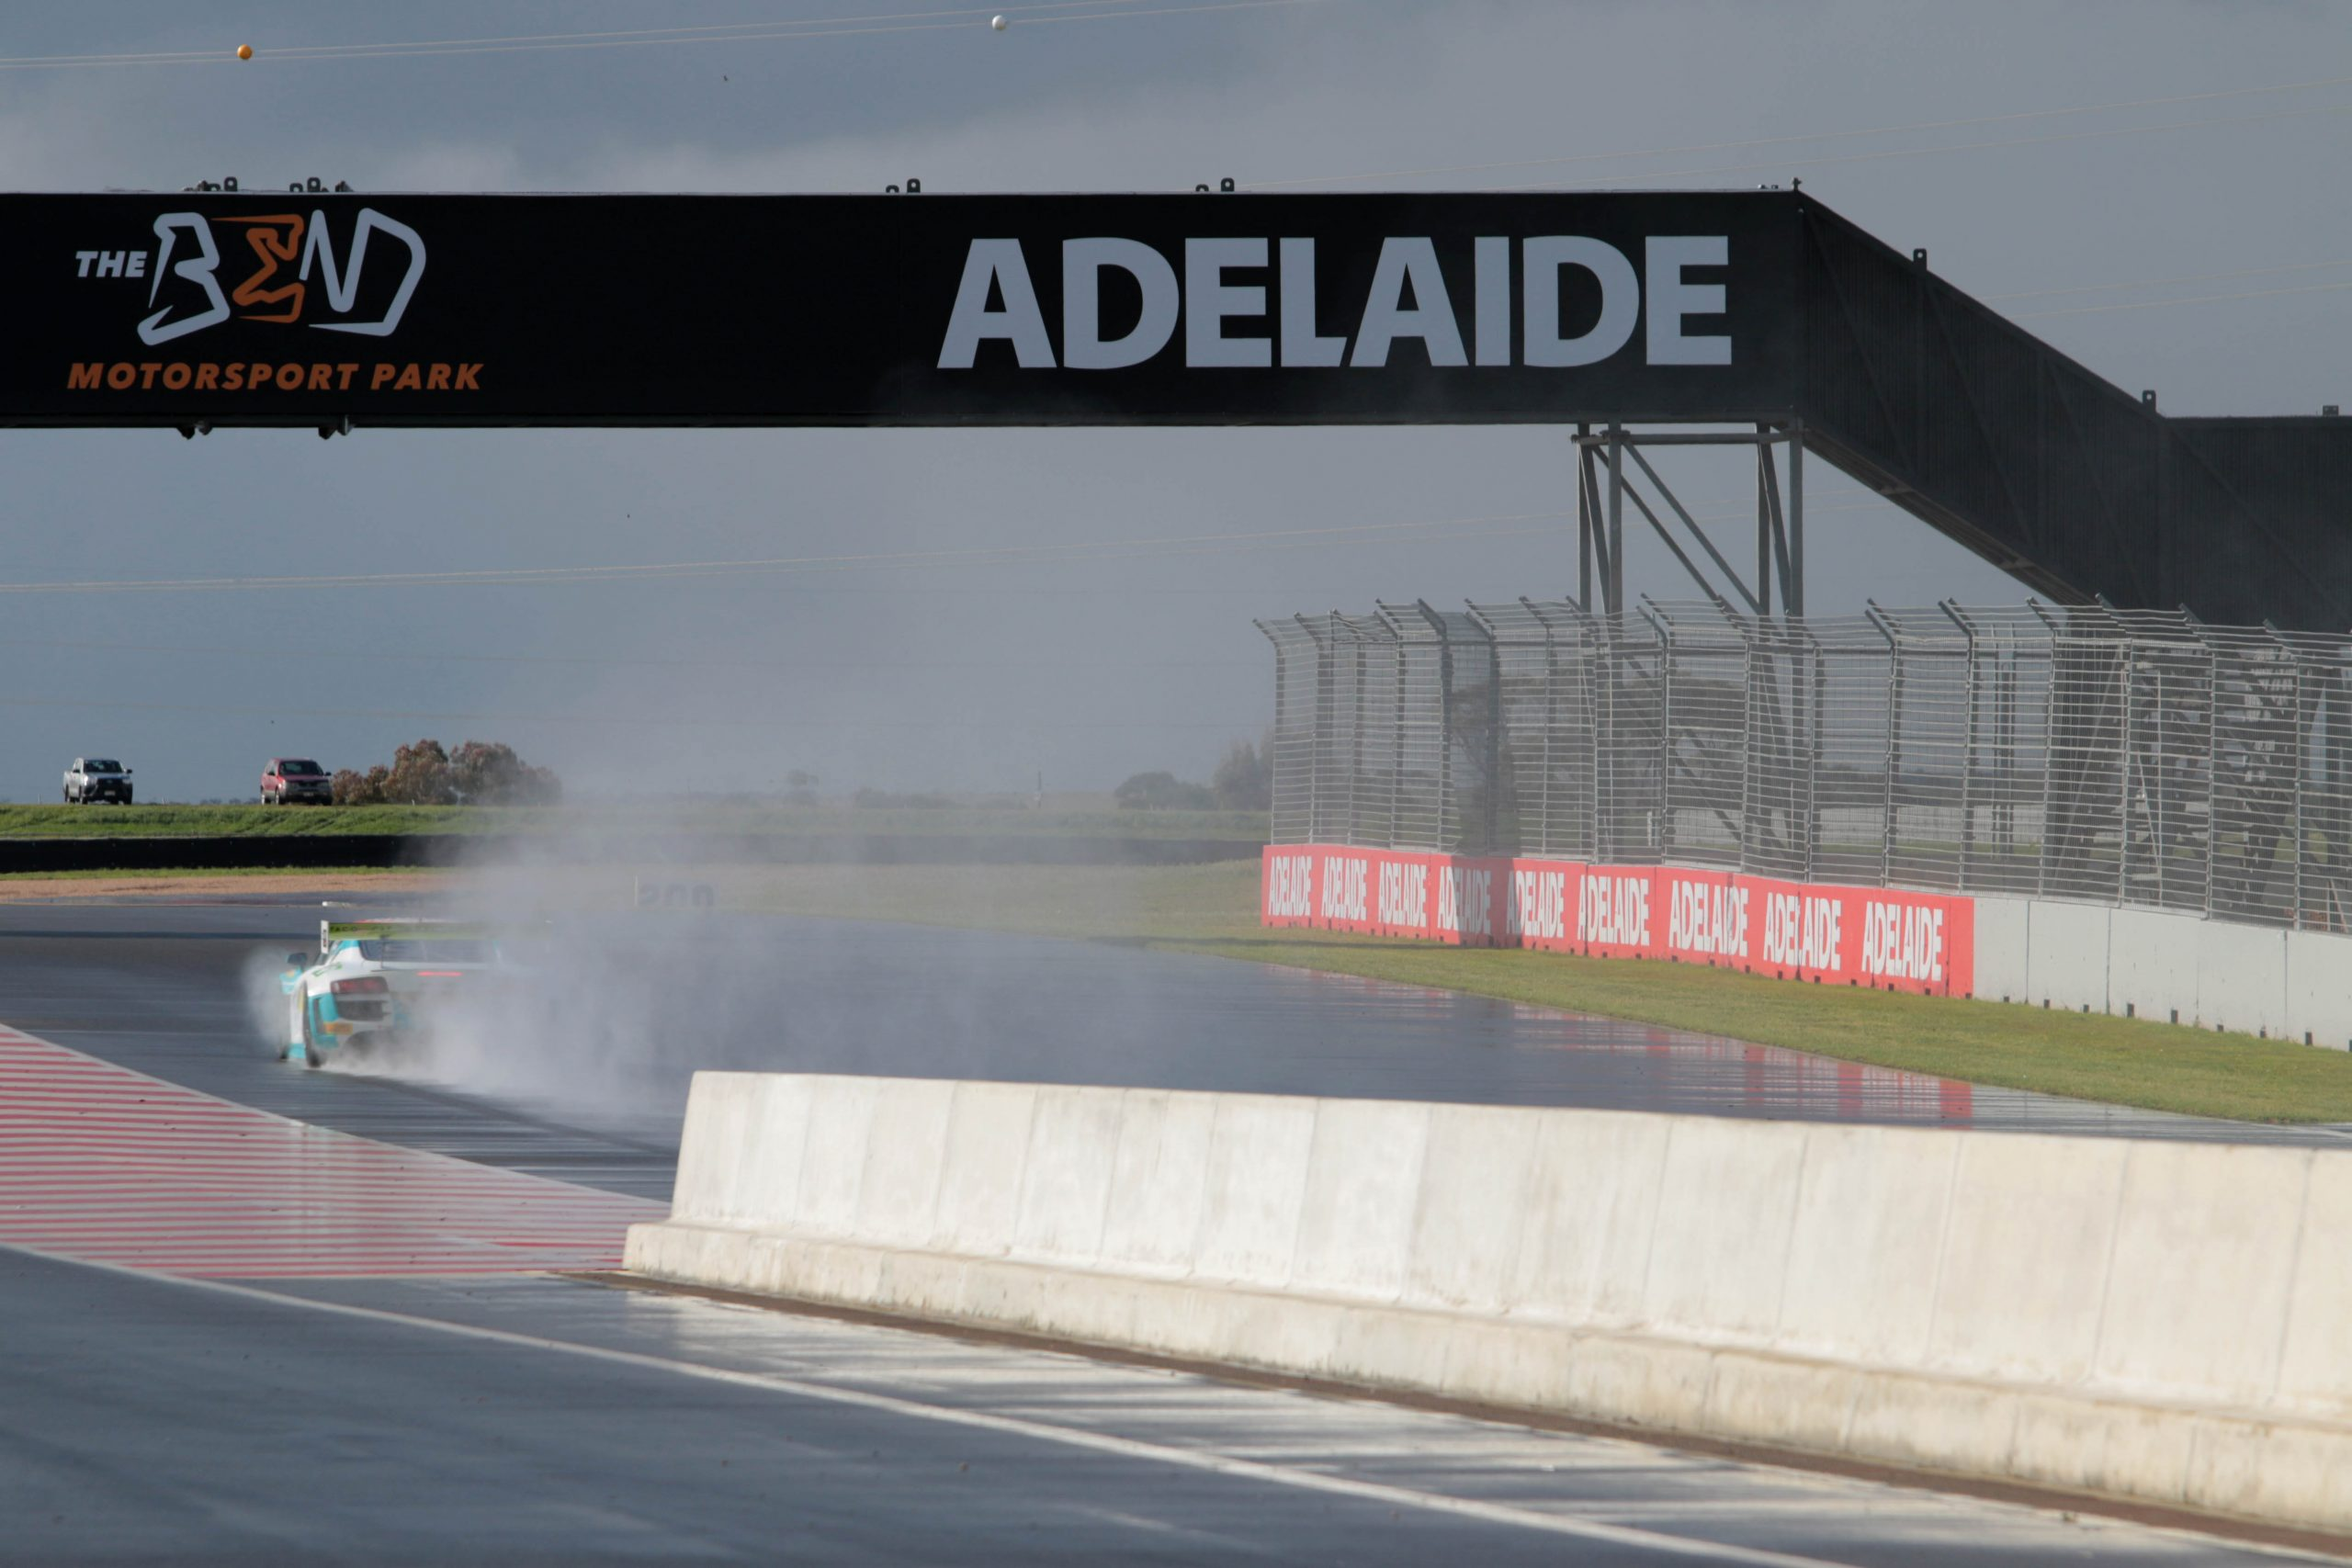 Double round at The Bend removed from racing calendar